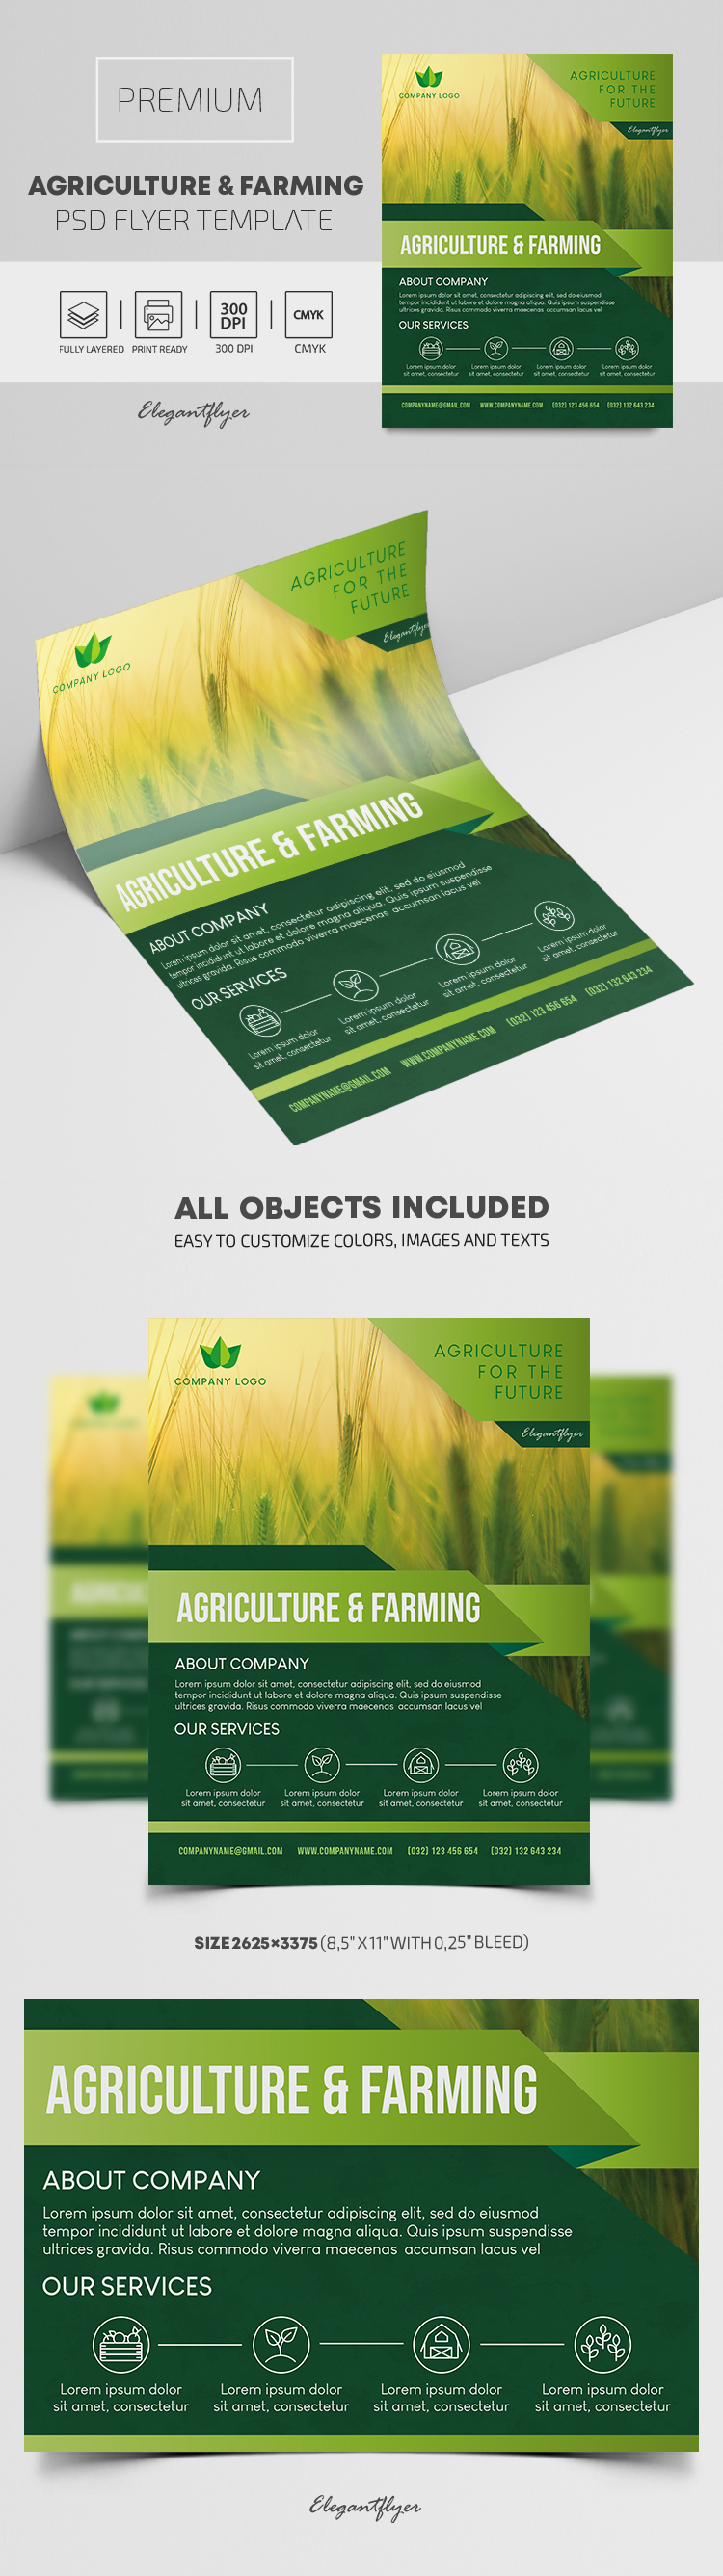 Agriculture and Farming – Premium PSD Flyer Template